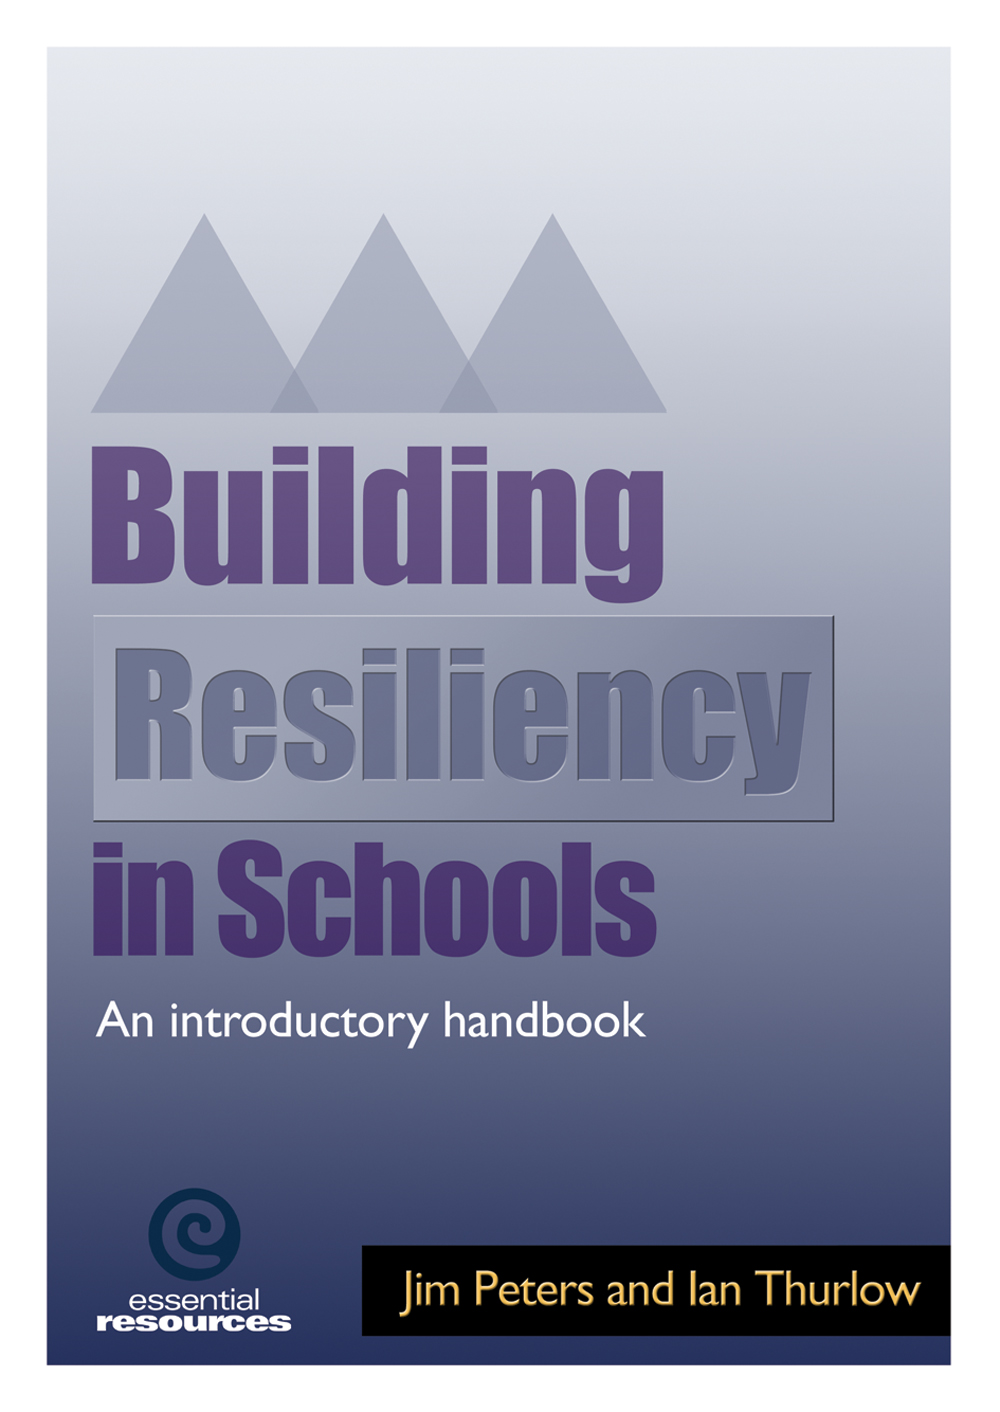 Building Resiliency in Schools